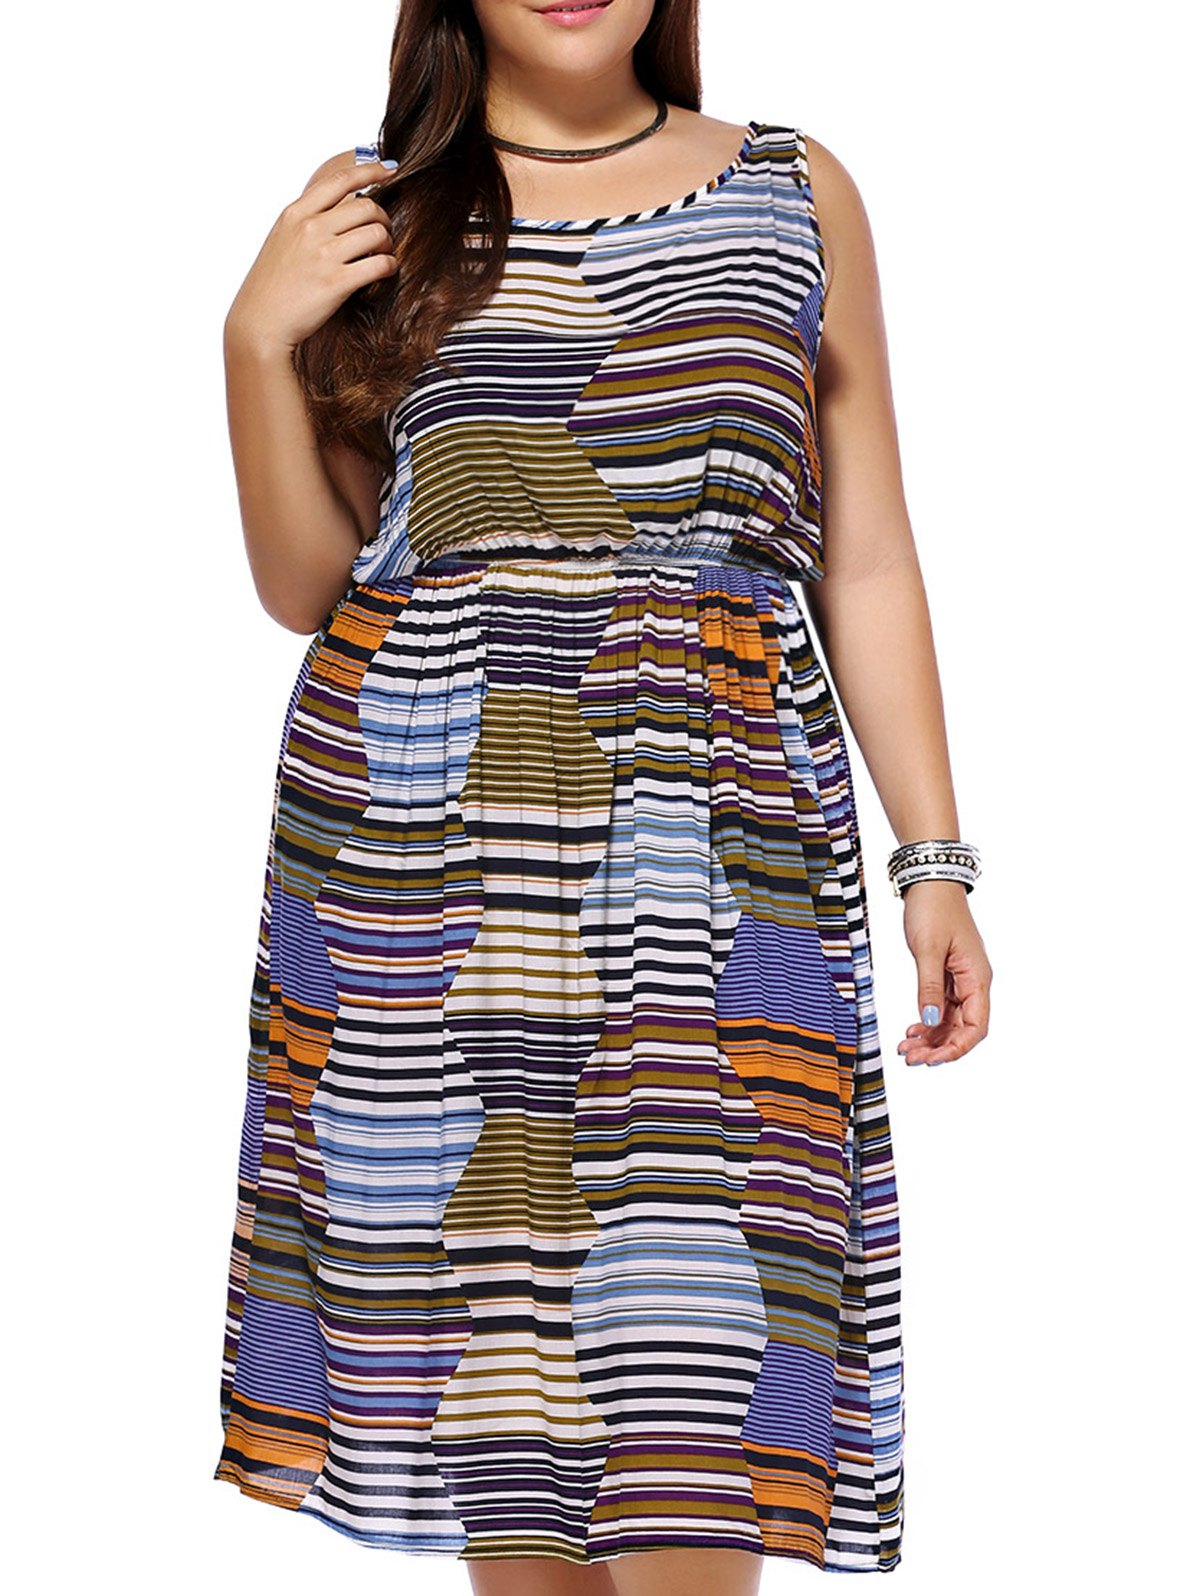 Bohemian Plus Size Stripe Dress - COLORMIX 2XL